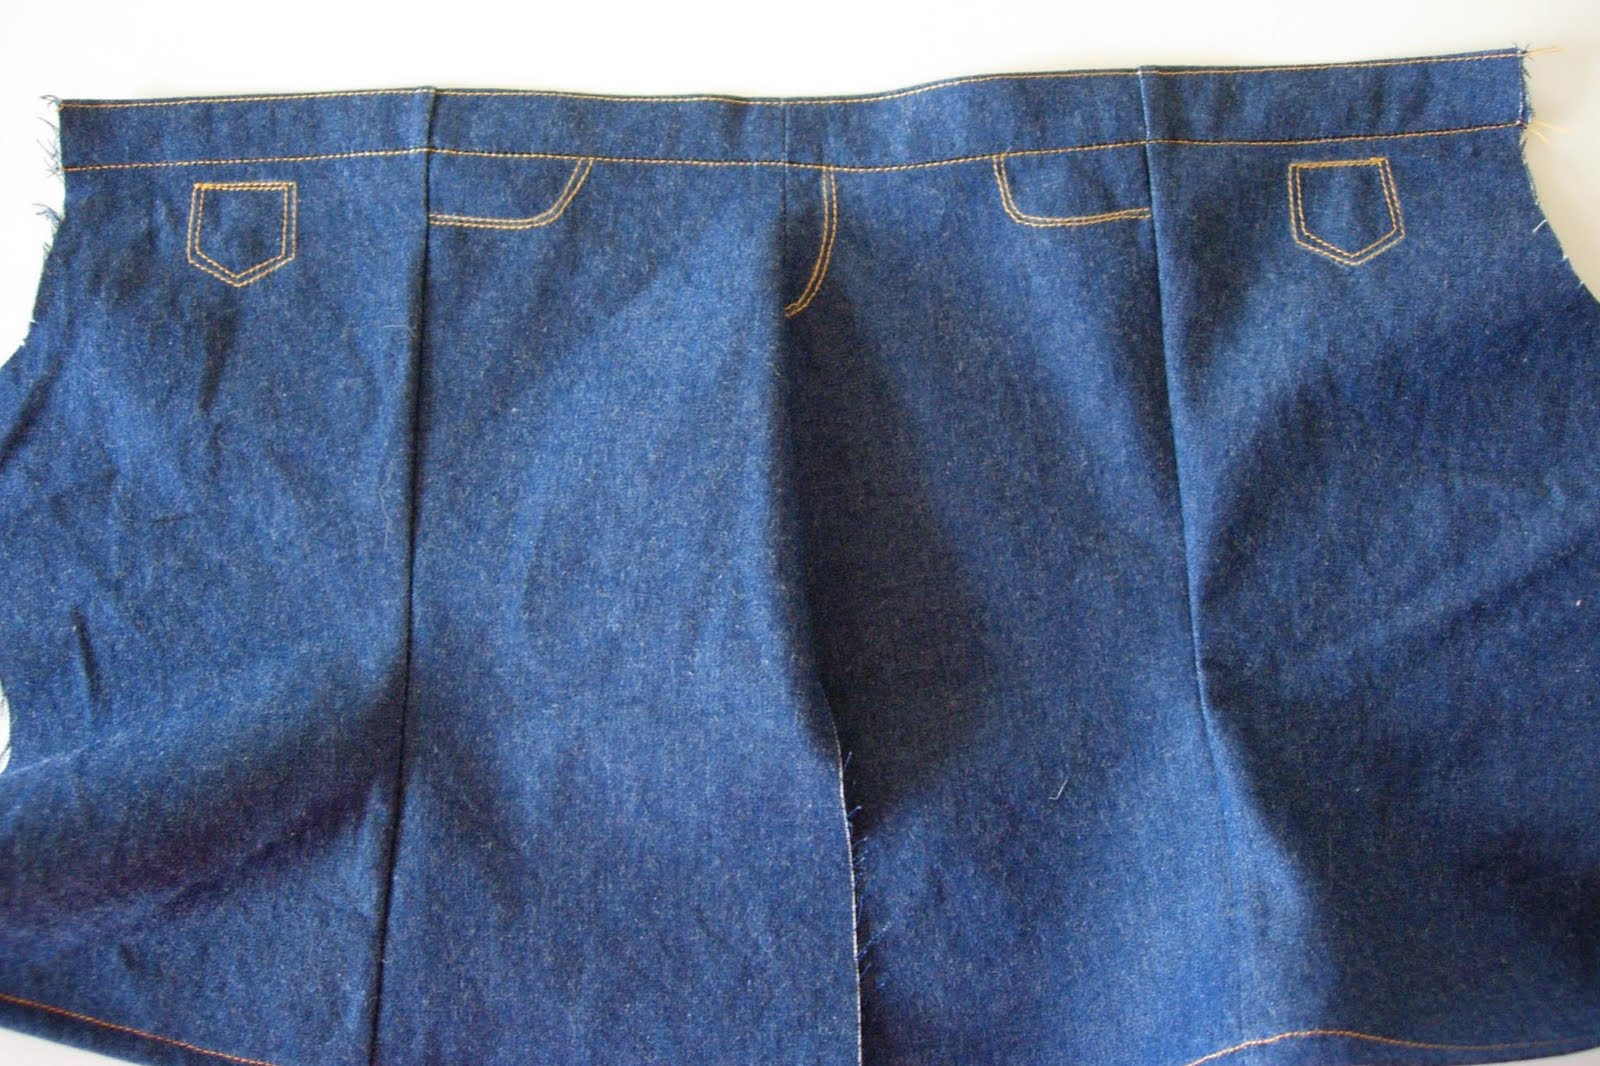 how to make bootcut jeans into skinny jeans without sewing